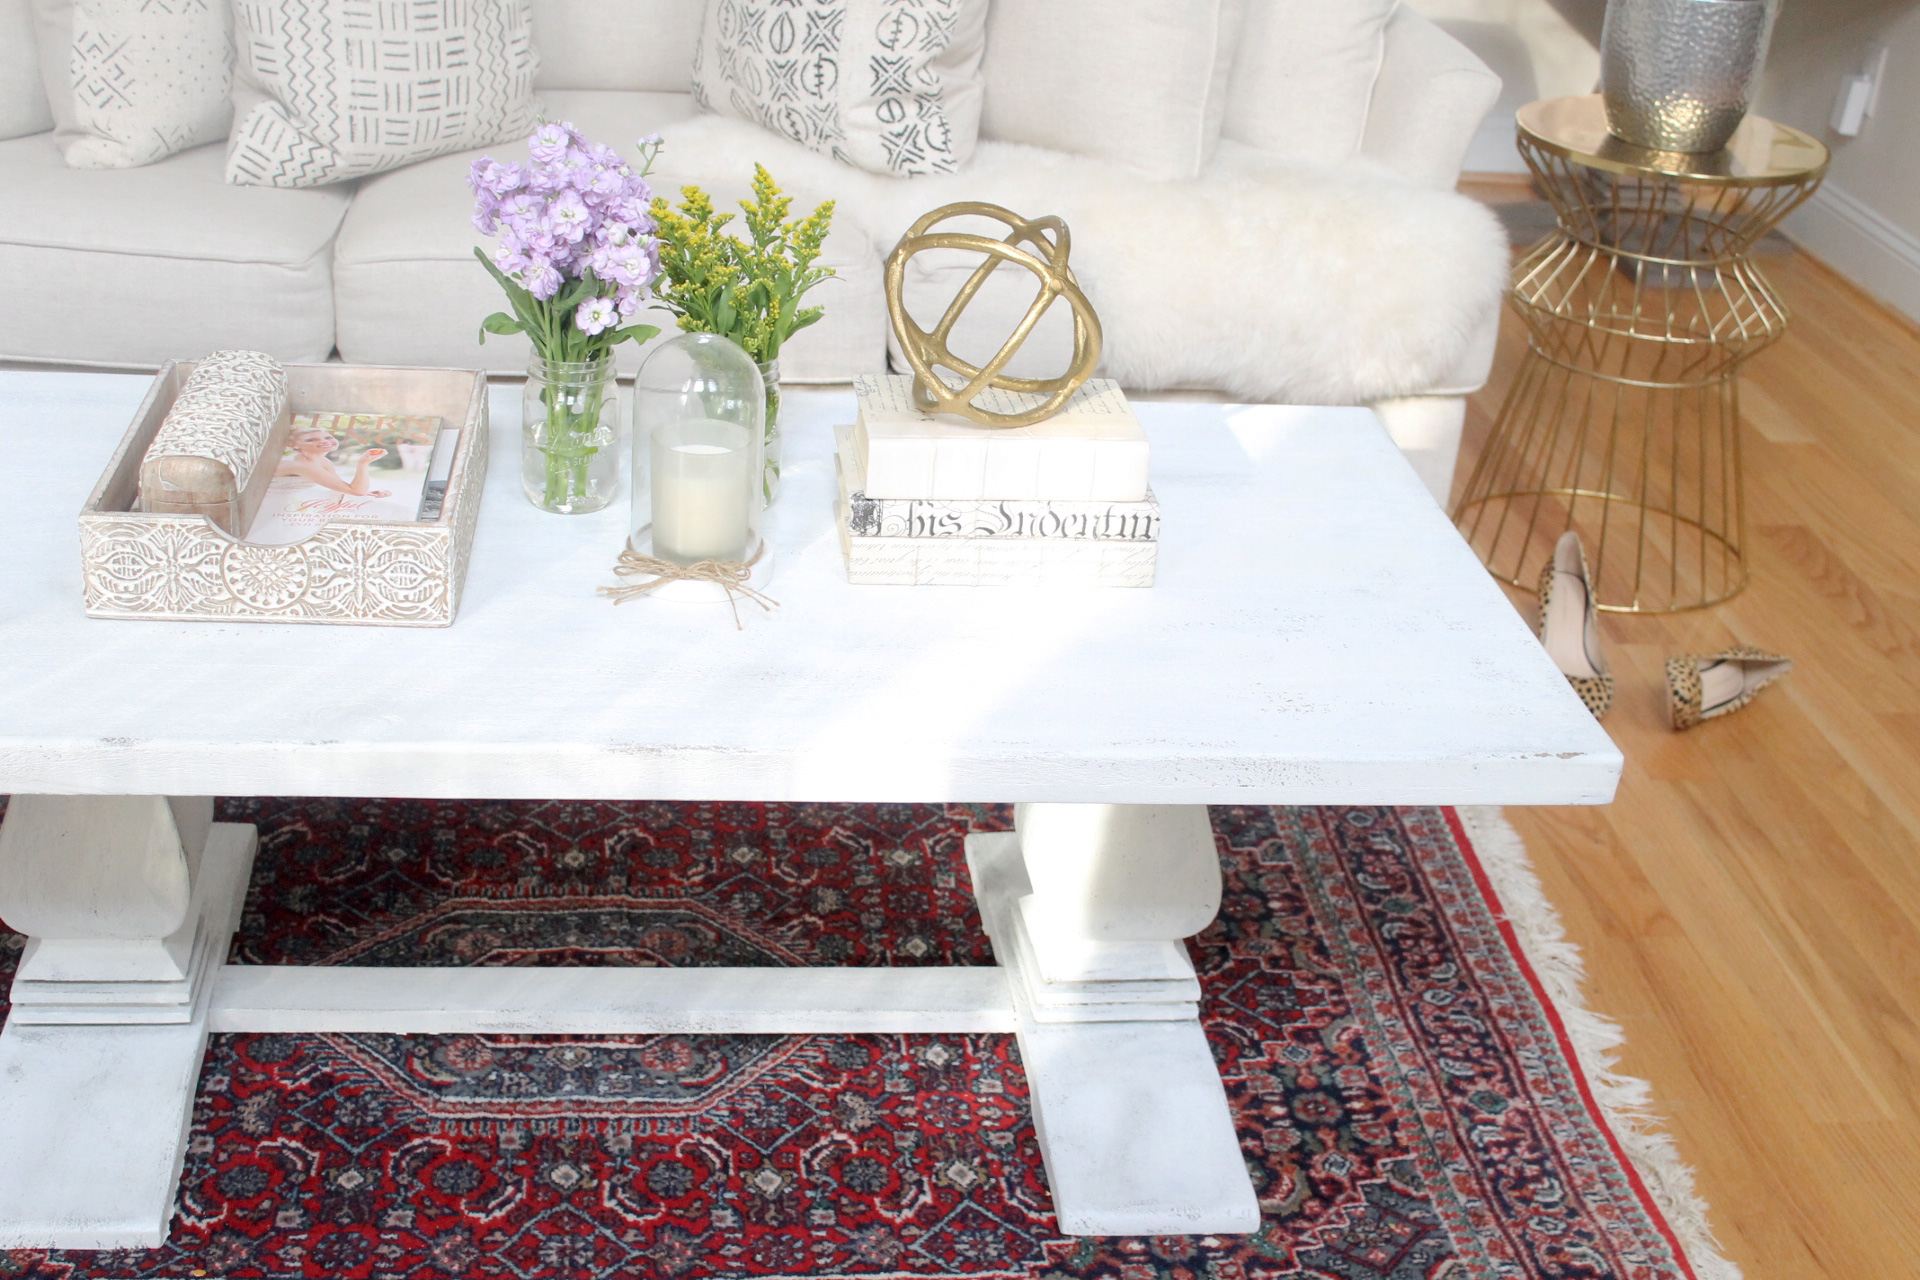 How to DIY a Distressed Shabby Chic Coffee Table (the Easy Way!)